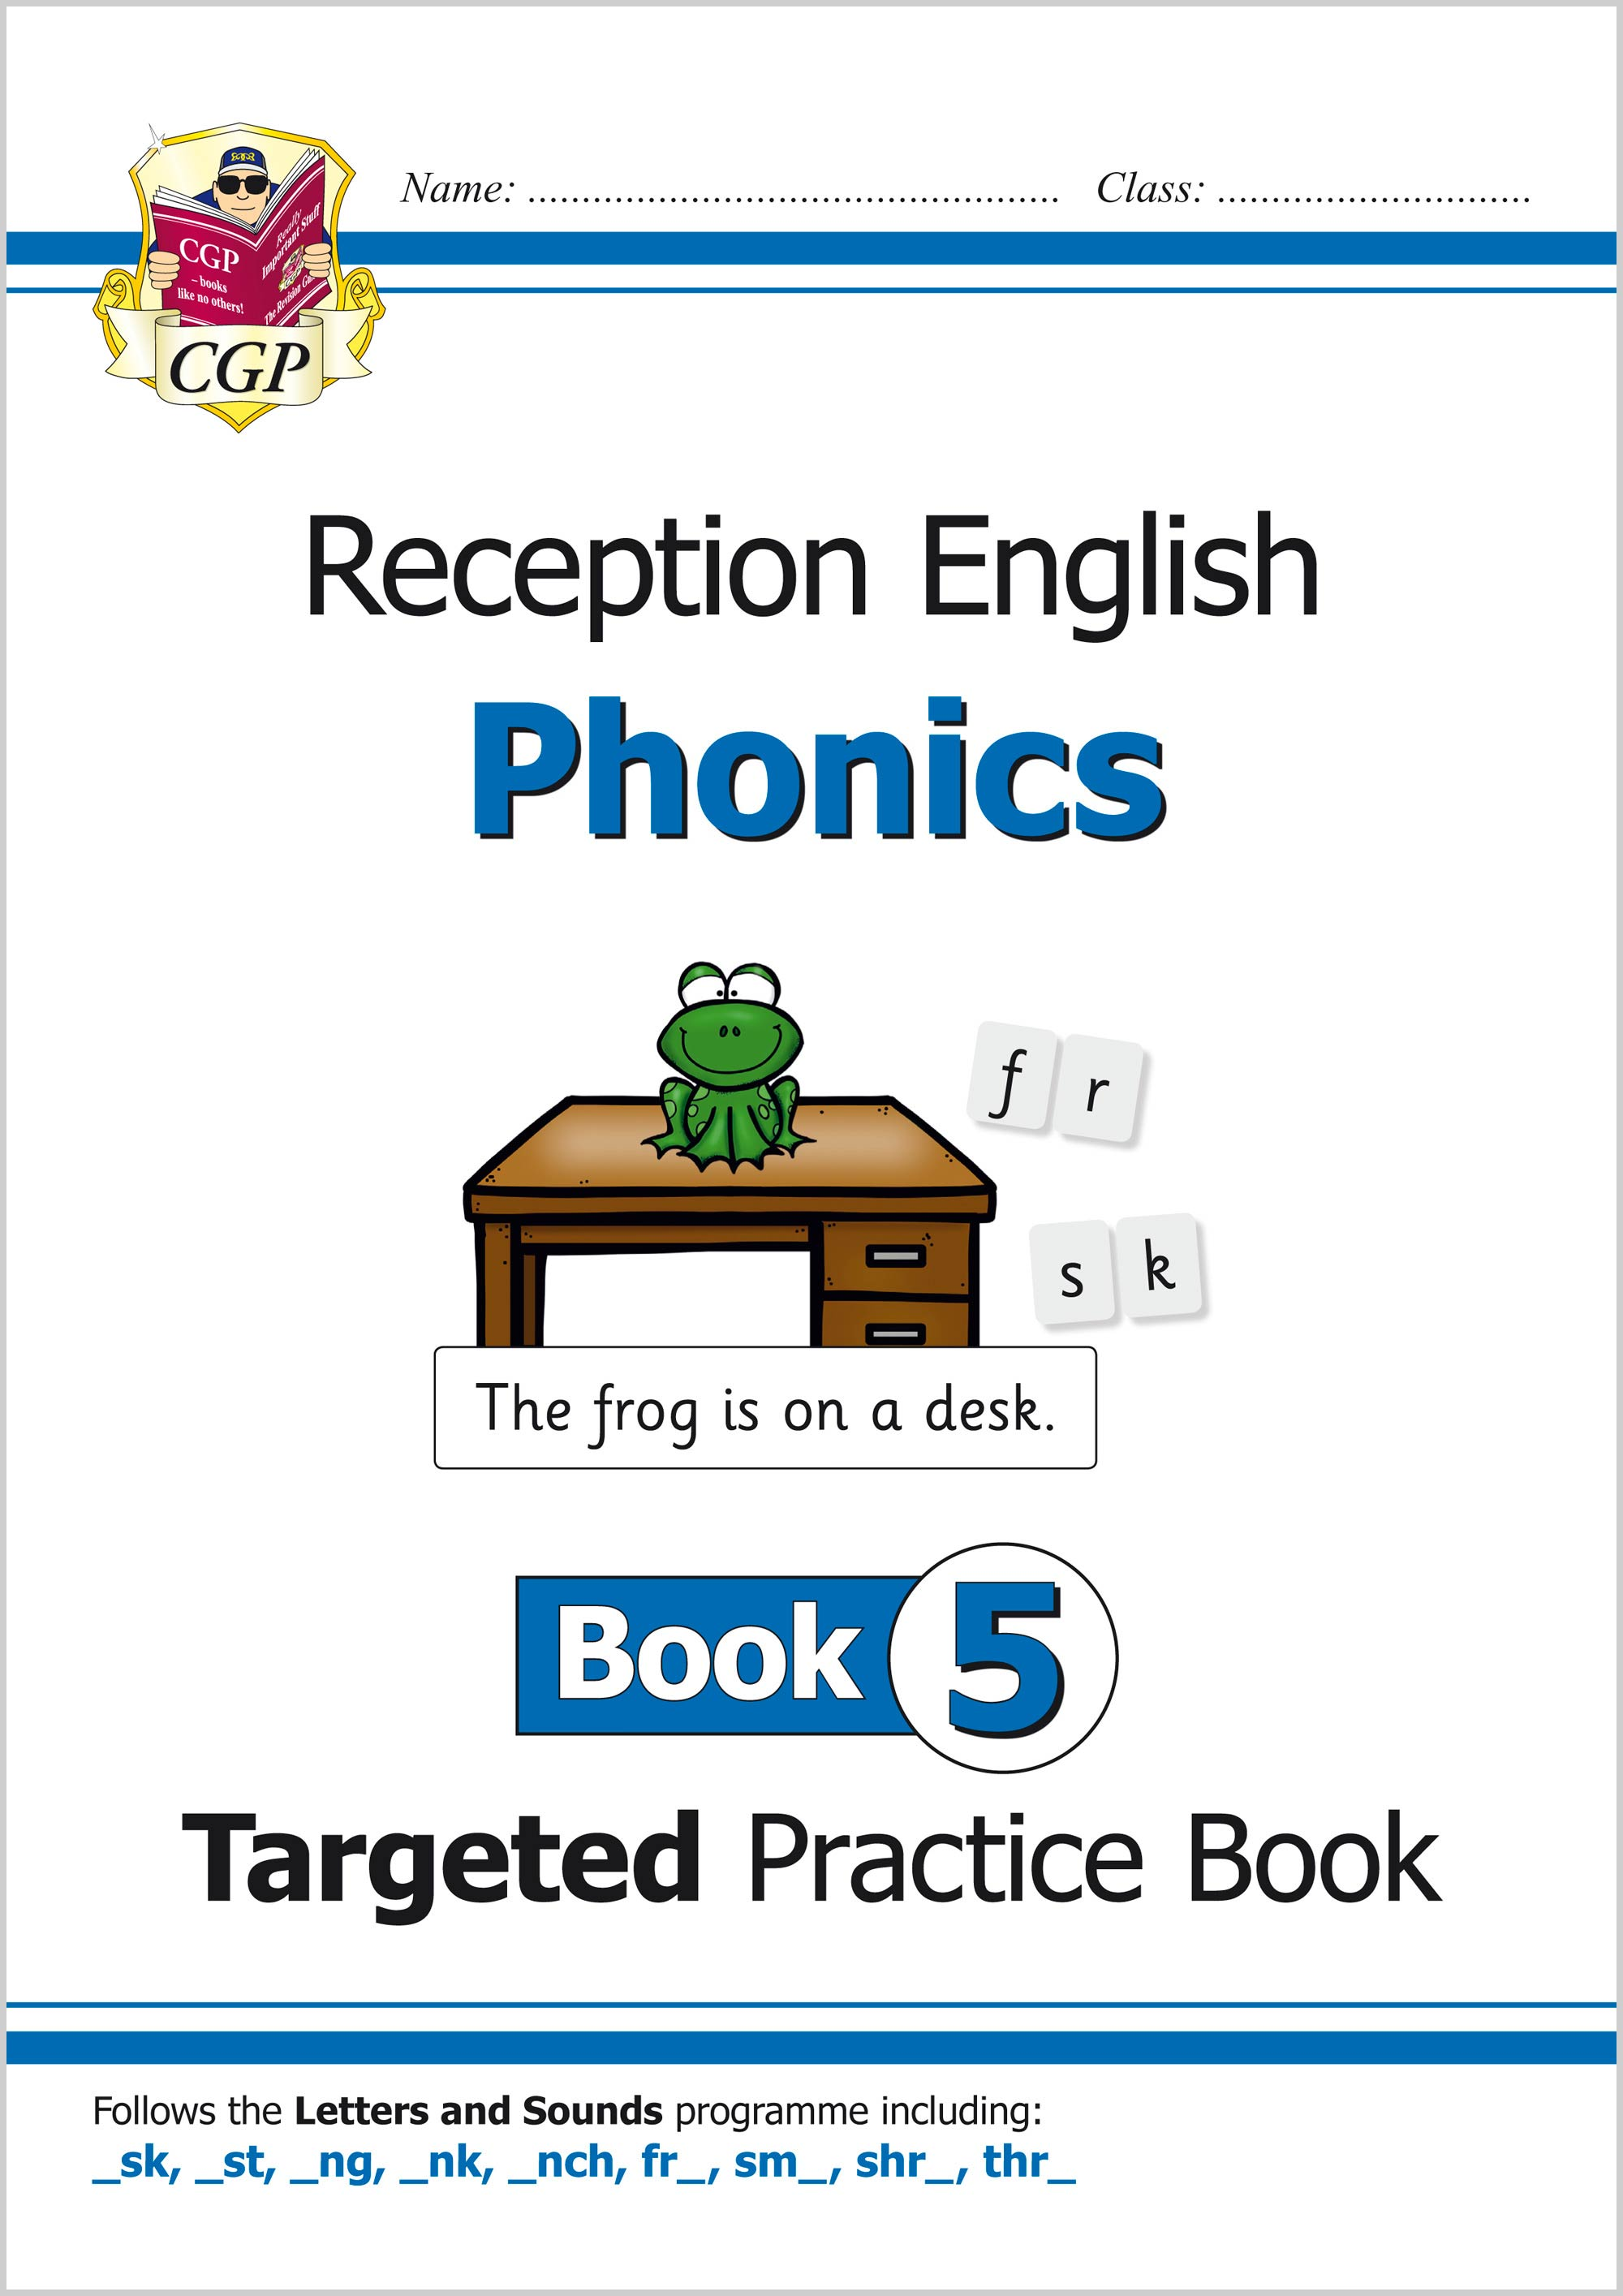 EROW511 - English Targeted Practice Book: Phonics - Reception Book 5